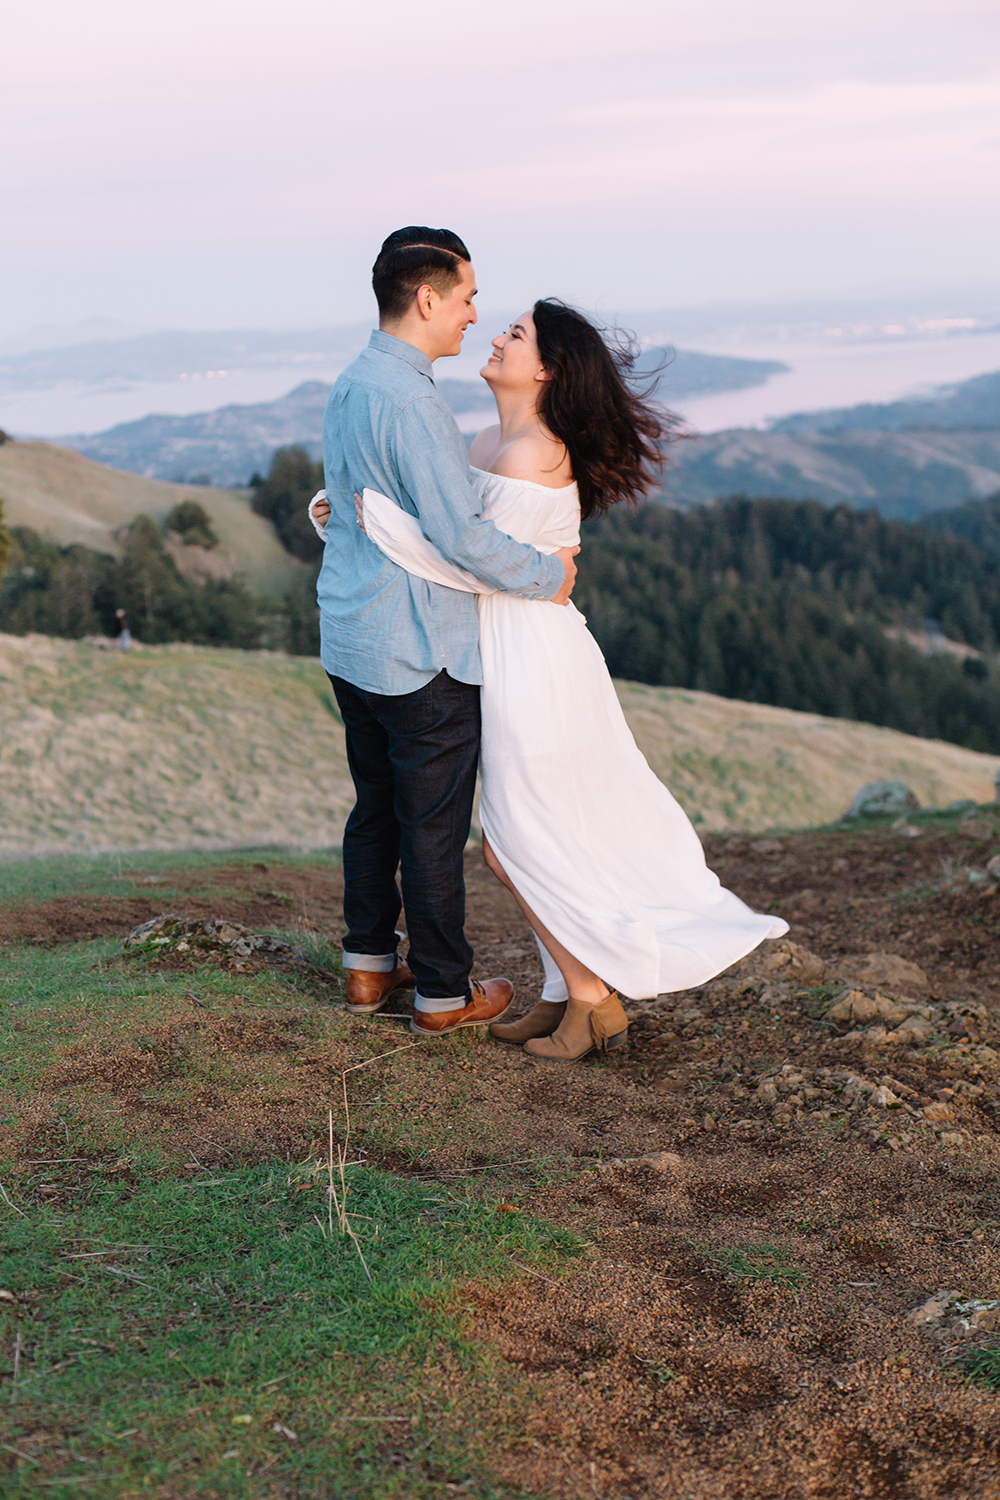 Couple smiling at eachother during their engagement session in Mount Tamalpais in Marin, California.